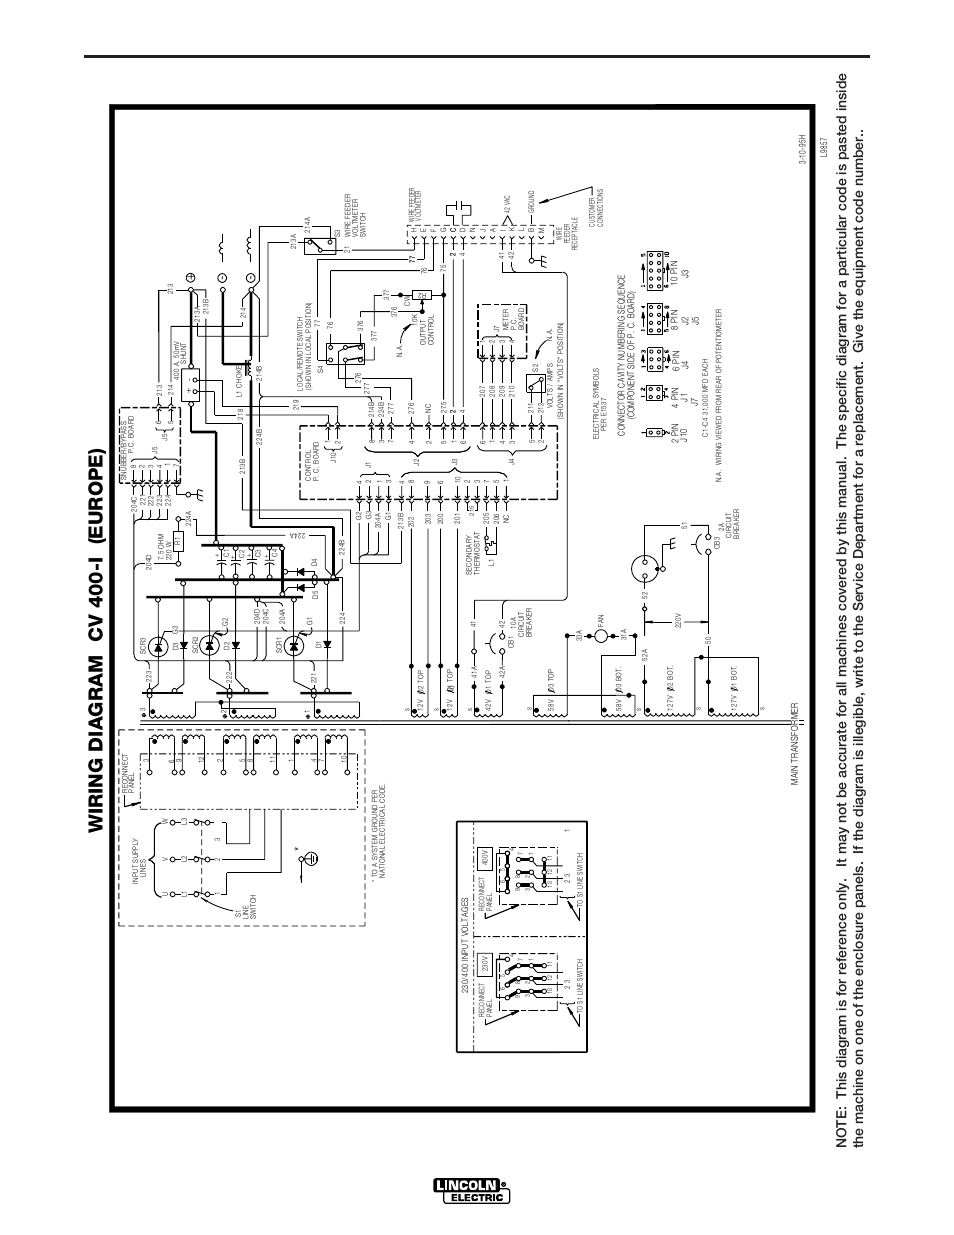 j 380 circuit board wiring diagram    diagrams     cv 400 i     wiring       diagram    cv 400 i  europe     diagrams     cv 400 i     wiring       diagram    cv 400 i  europe